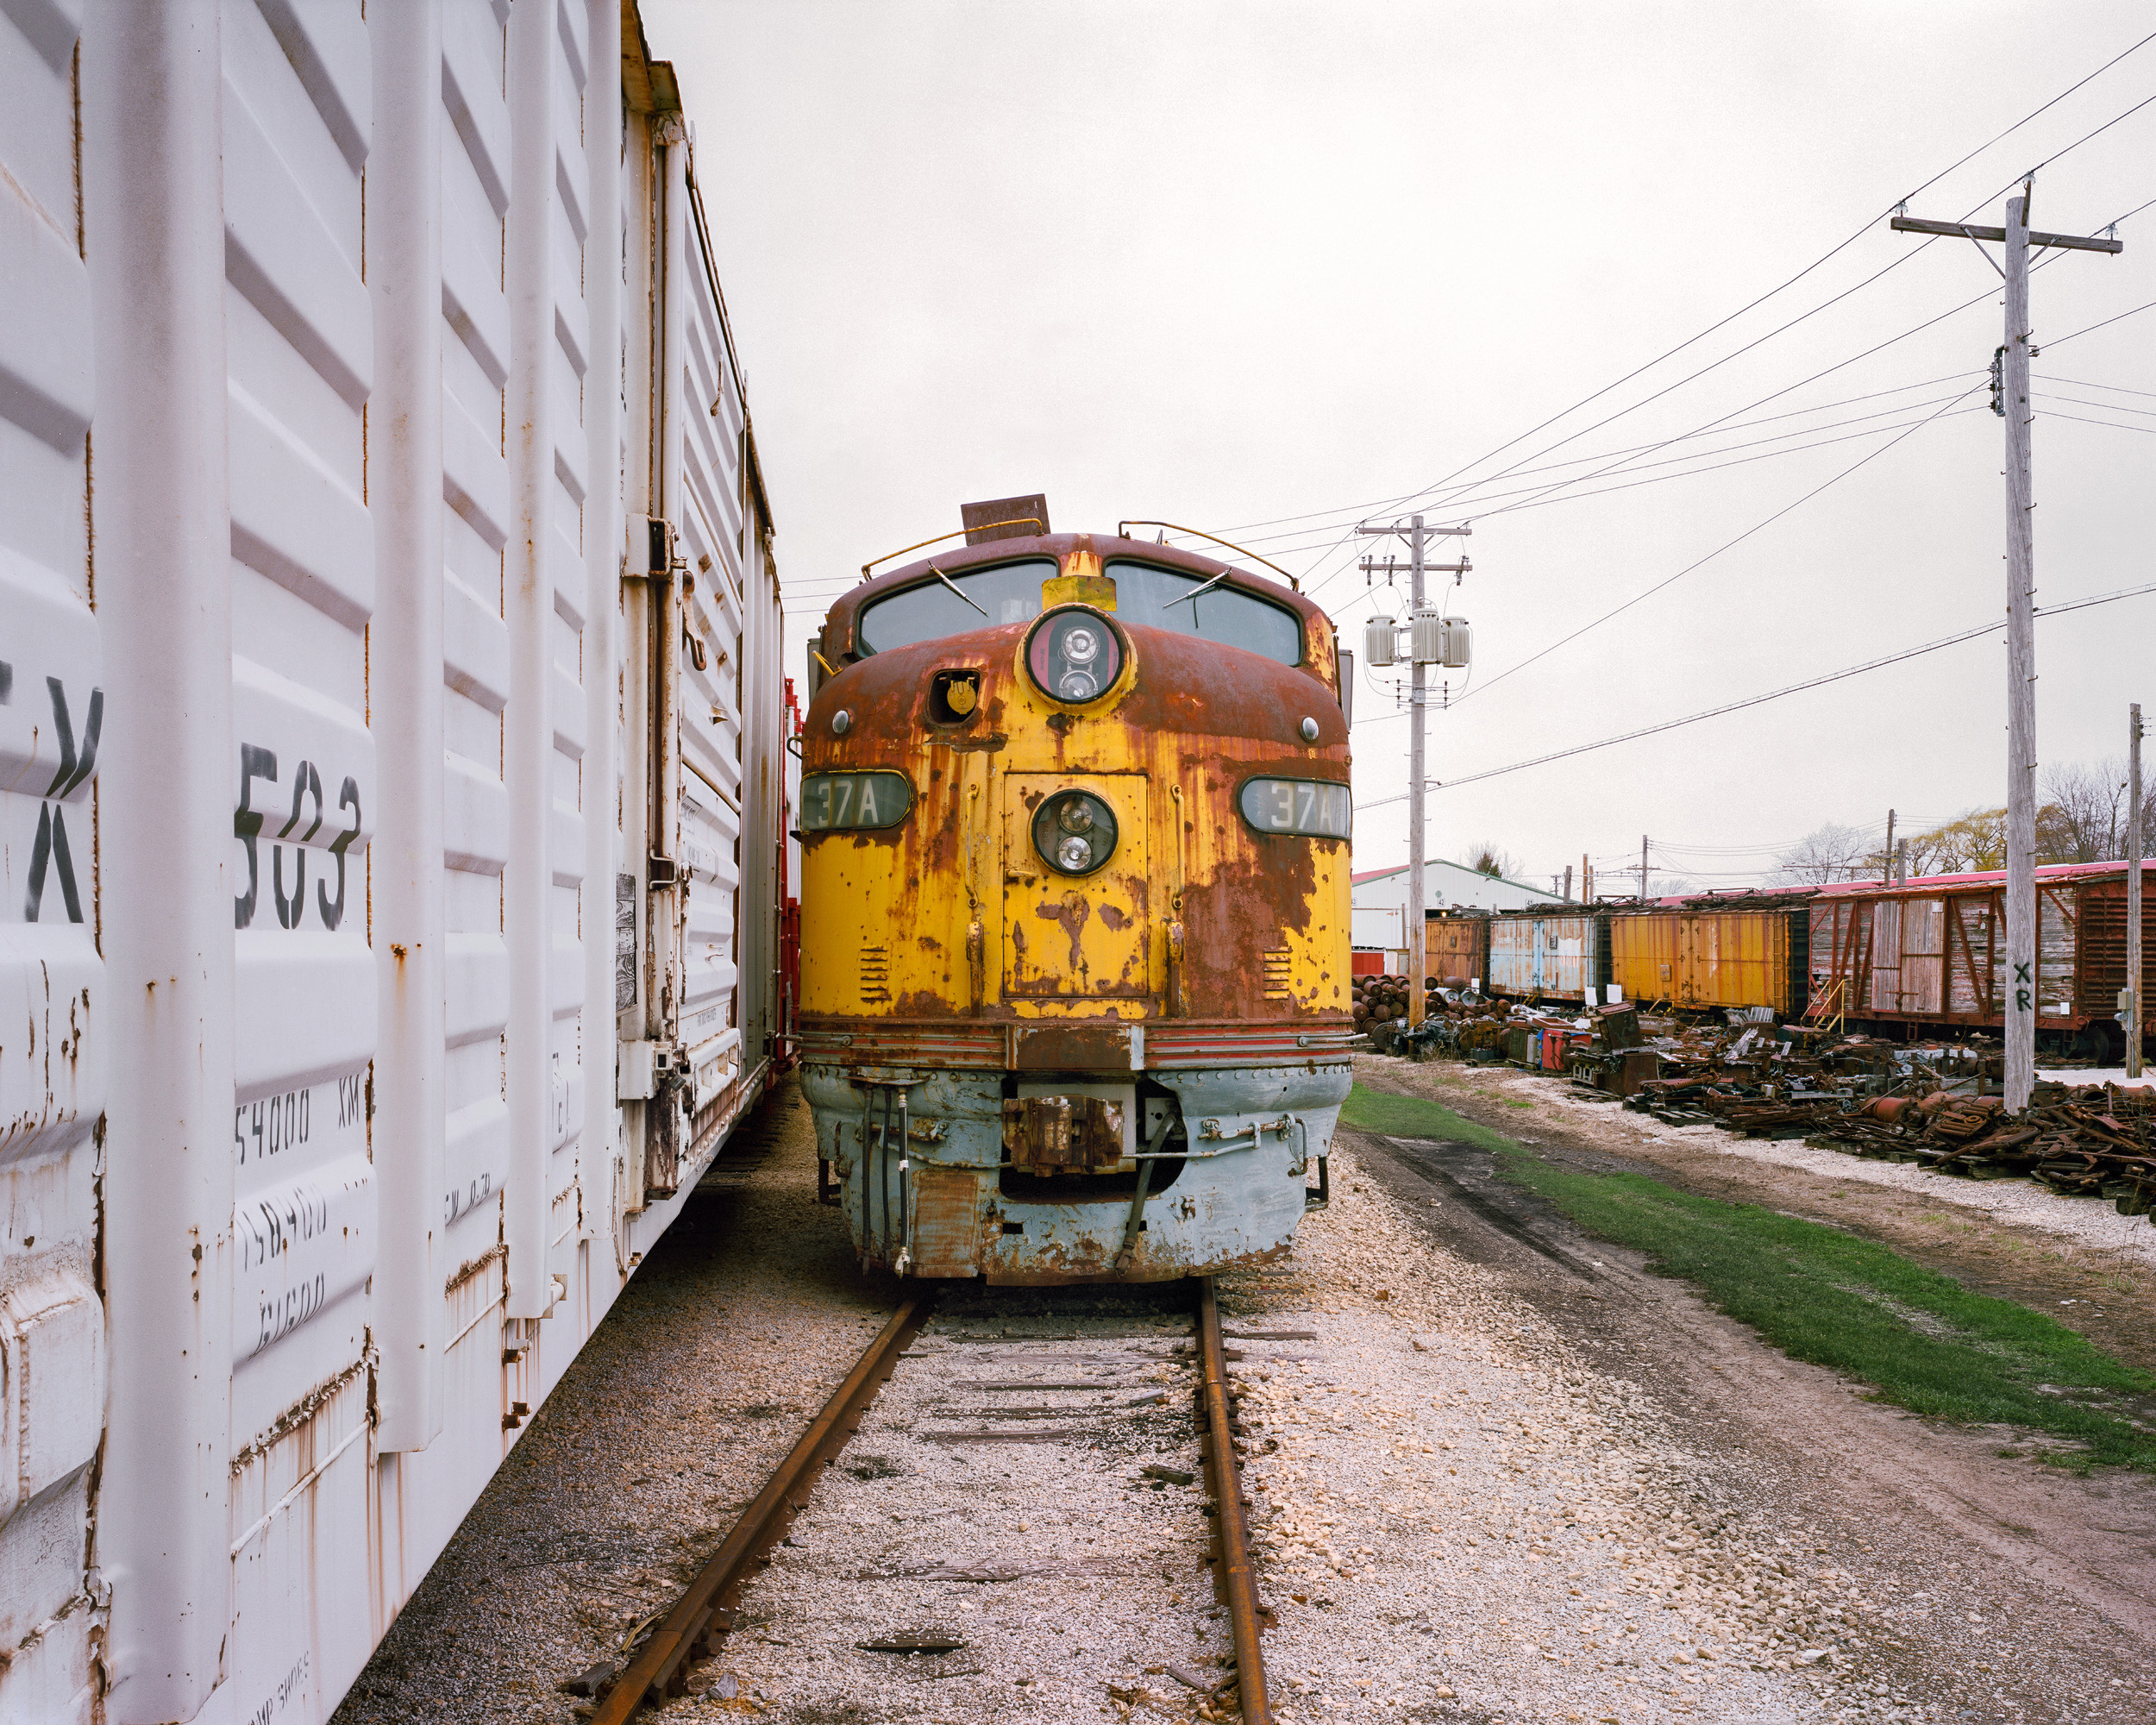 Milwaukee Road 37A, Illinois Railway Museum